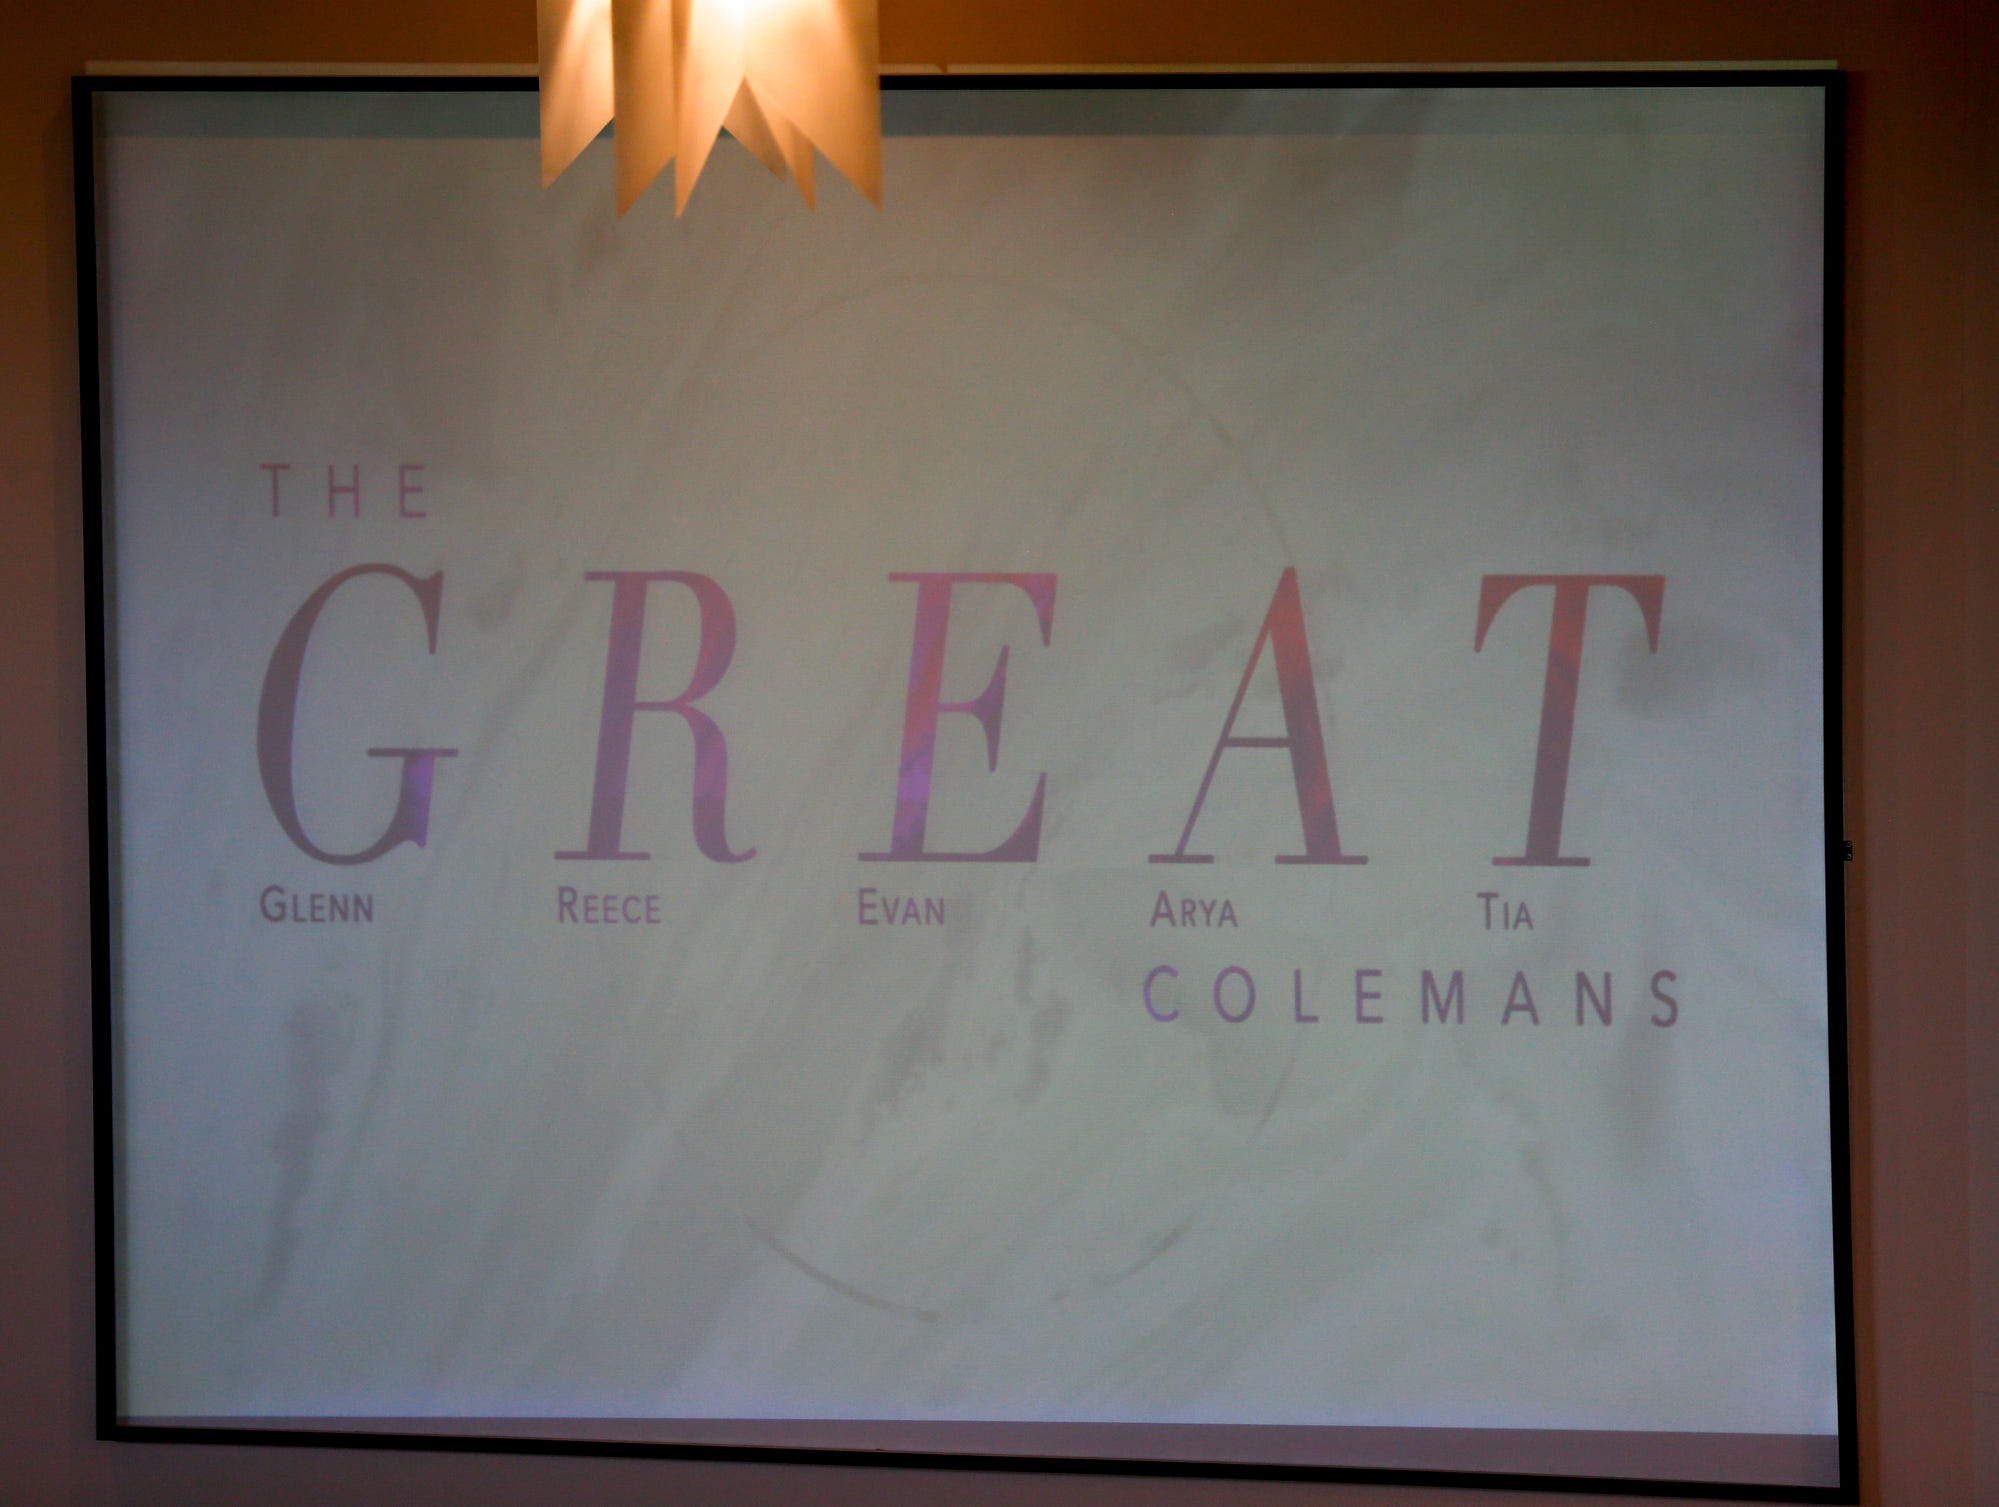 The GREAT Colemans is used to describe the five members of the Coleman family during the homegoing service of Glenn Coleman, 40, Reece, 9, Evan, 7, and Arya, 1, at Grace Apostolic Church on Friday, July 27, 2018. Seventeen people were killed in the duck boat accident in Branson, Missouri, nine of them were members of the Coleman family; Tia and her nephew were the two of the family that lived.